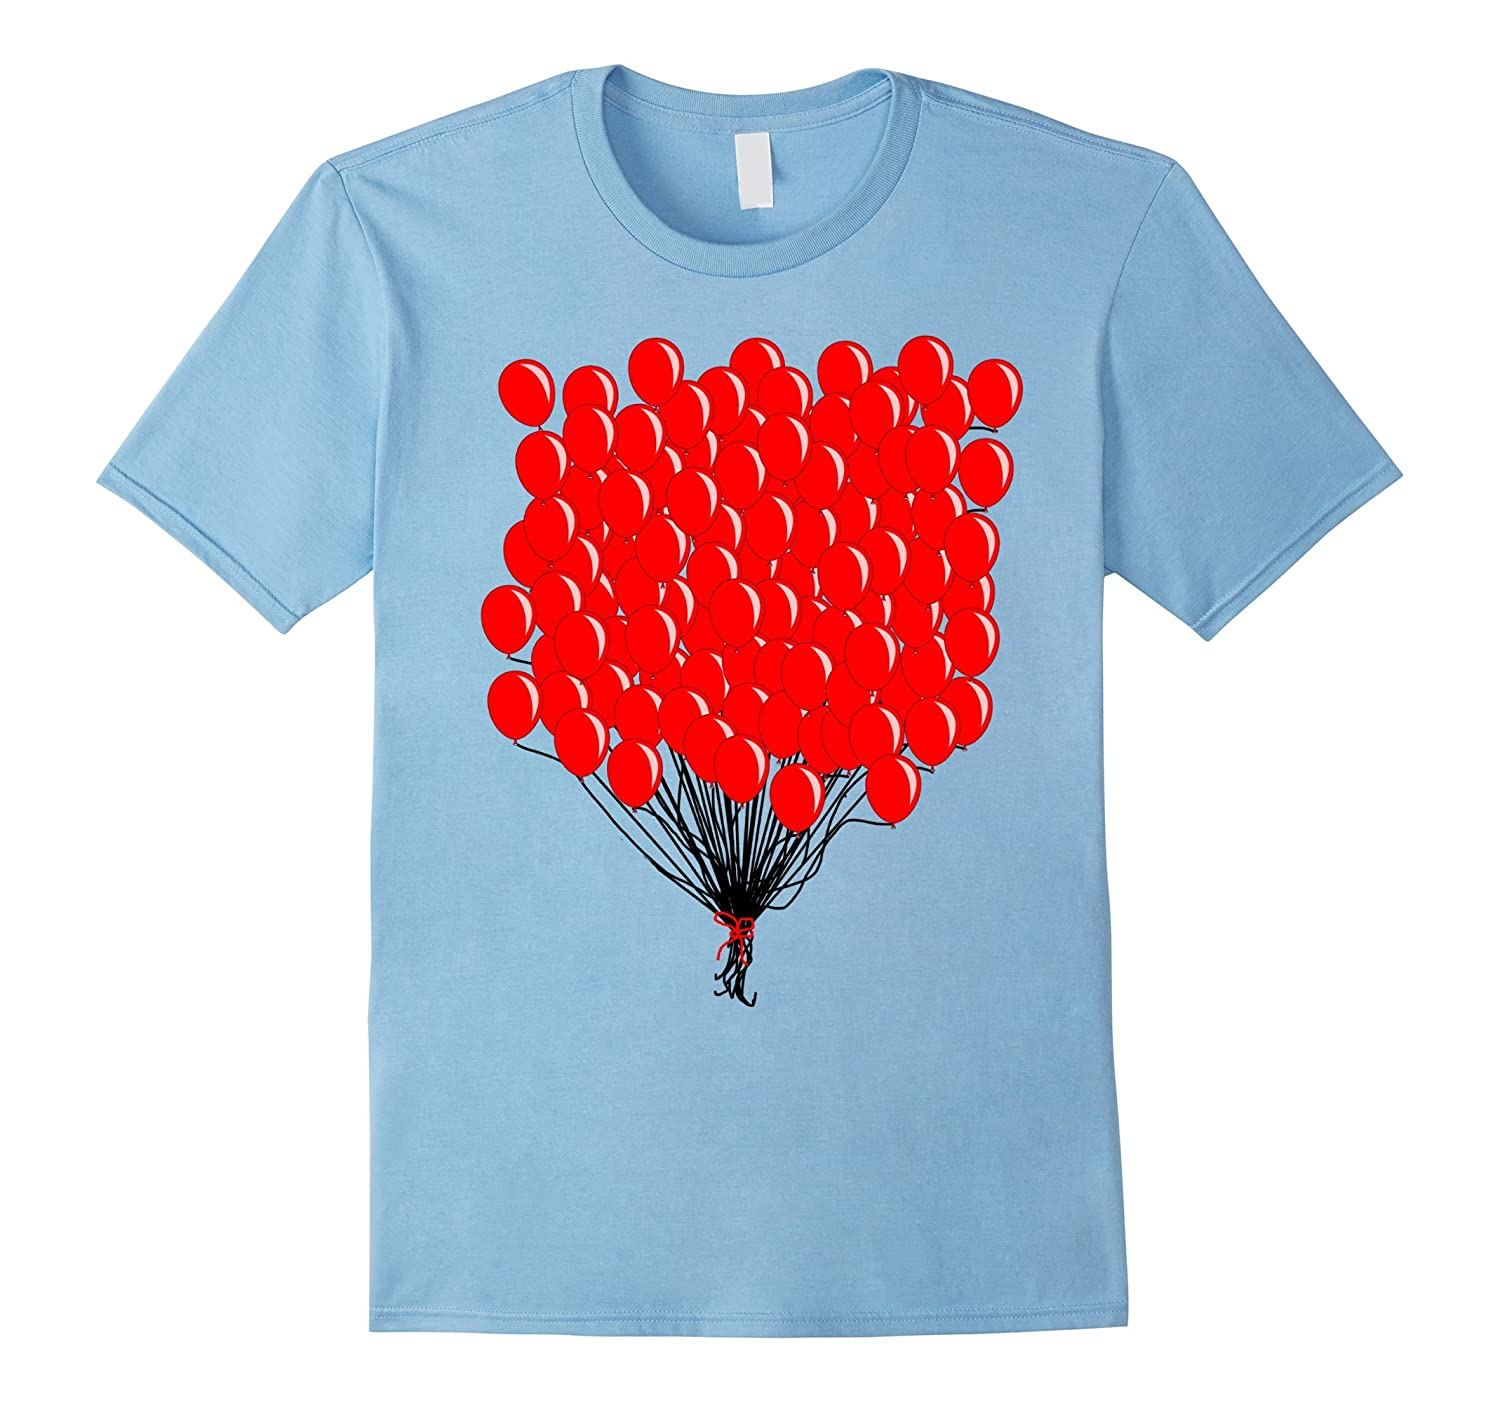 99 Red Balloons Classic Eighties Song T Shirt TH